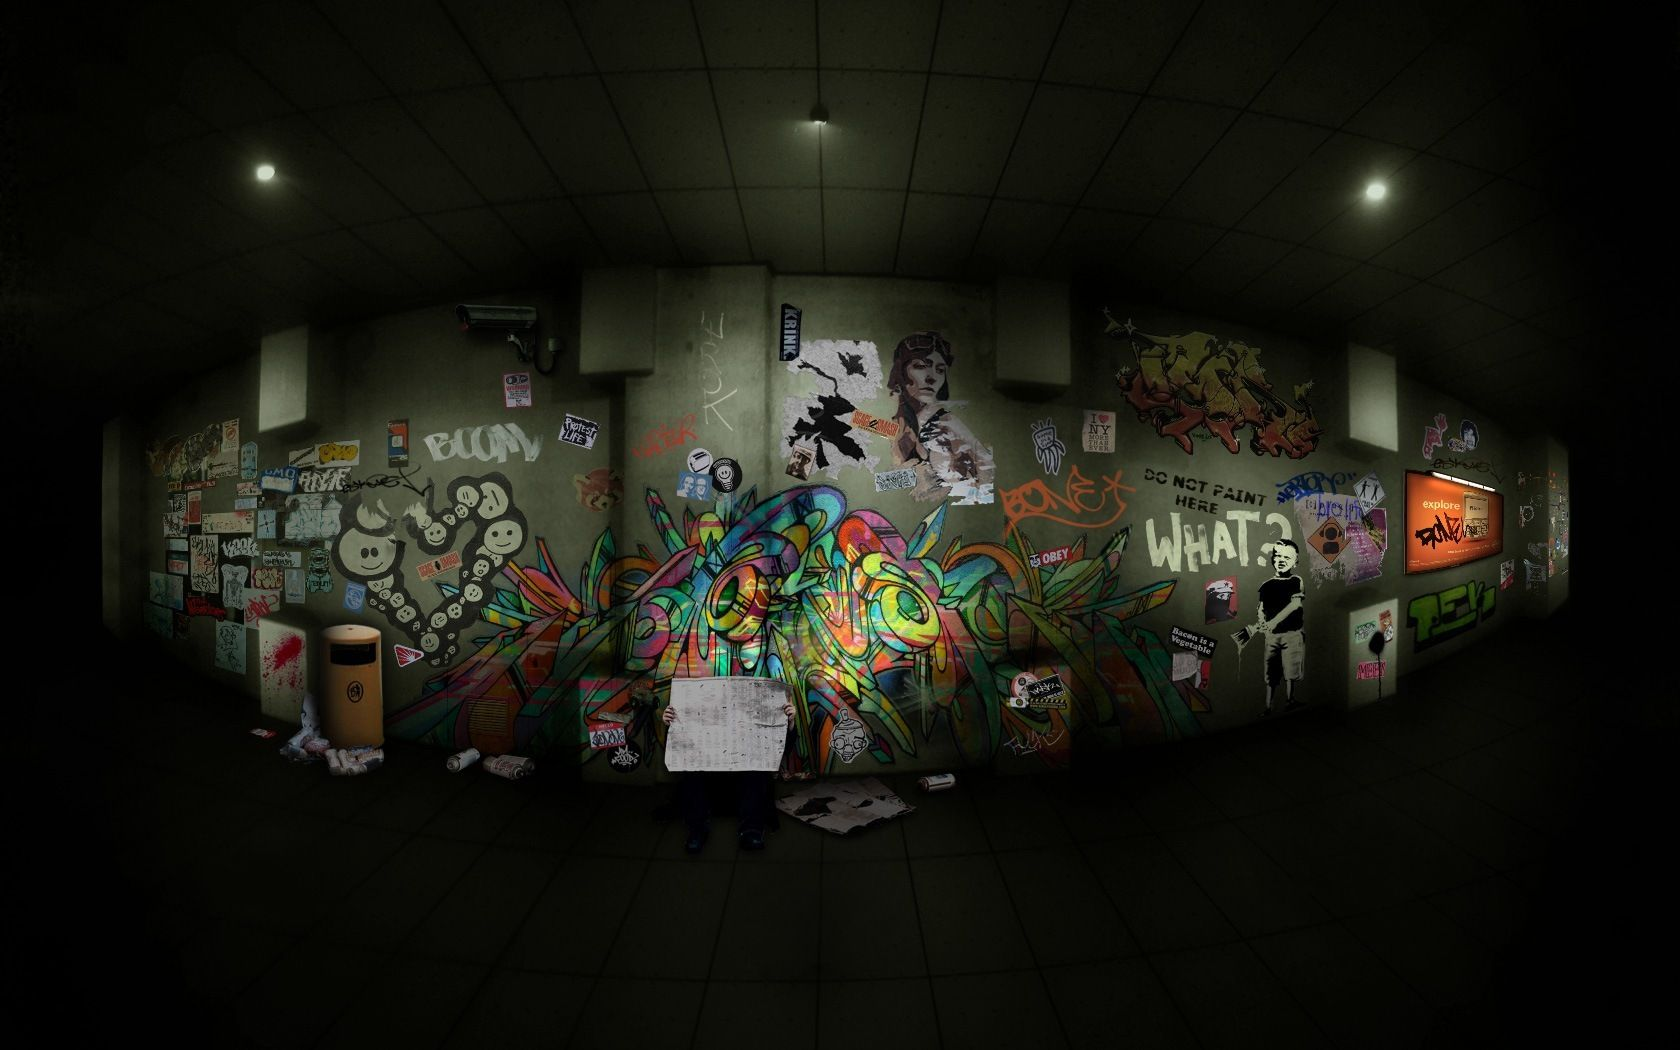 graffiti-wallpaper-hd